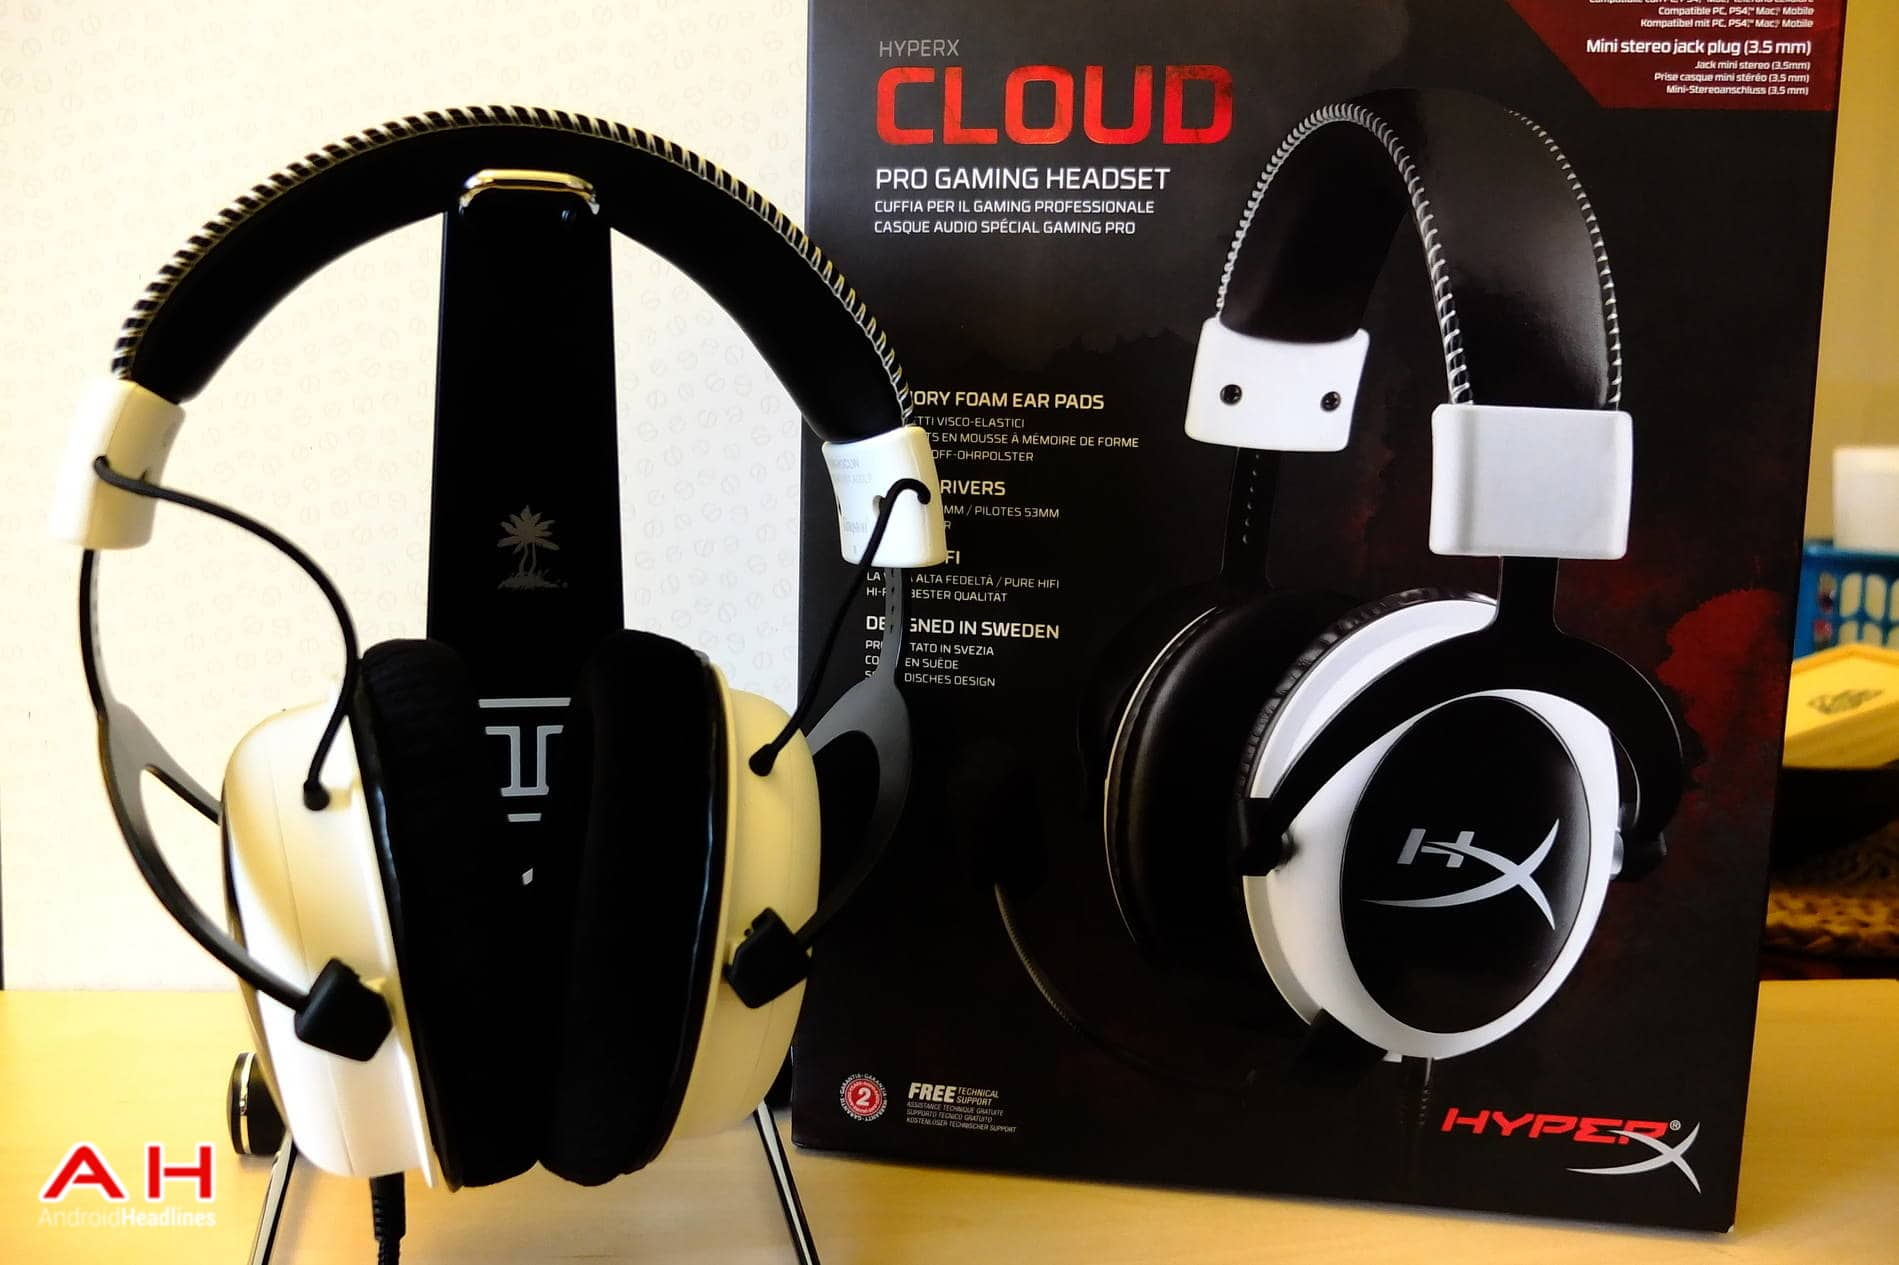 Kingston hyperx cloud ii gaming headset word cloud - Featured Review Kingston Hyperx Cloud Gaming Headset The Perfect Do It All Headset